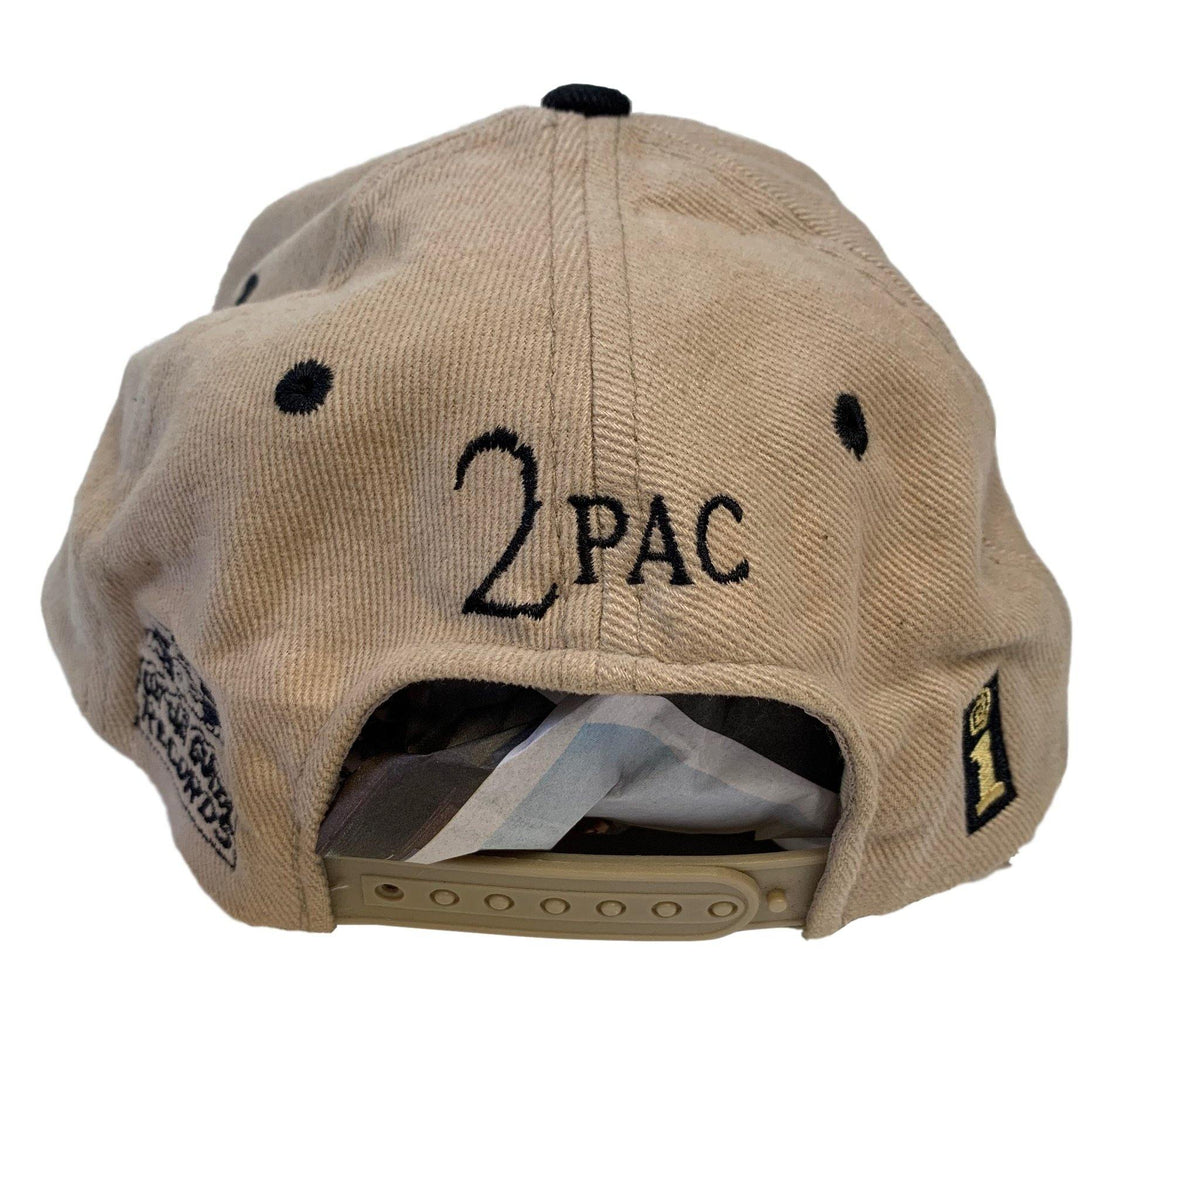 "Vintage 1995 2Pac ""Me Against The World"" Promotional Hat - jointcustodydc"